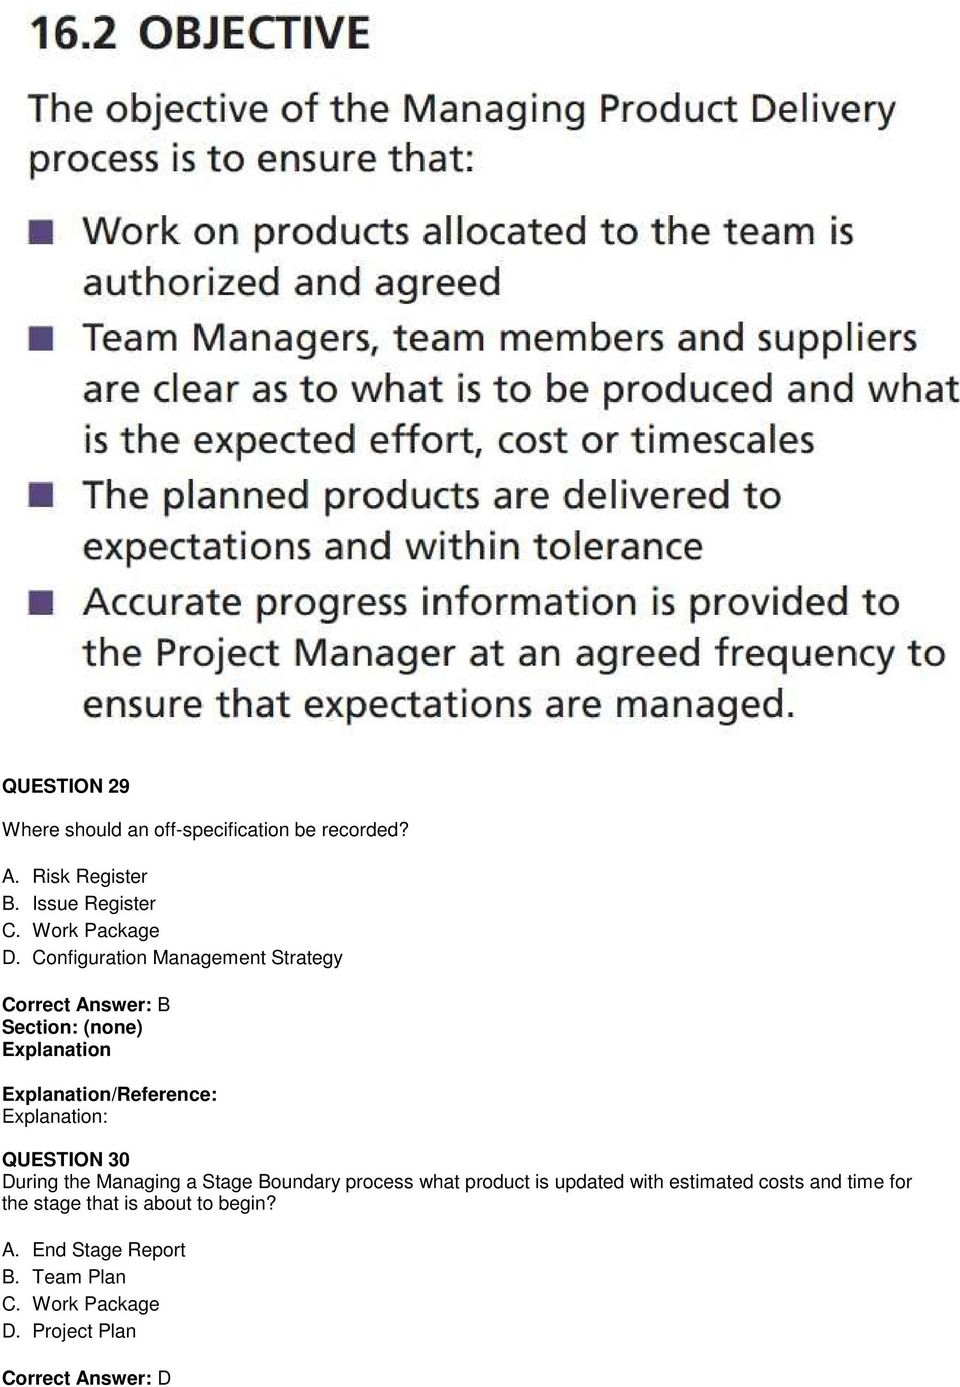 Configuration Management Strategy /Reference: : QUESTION 30 During the Managing a Stage Boundary